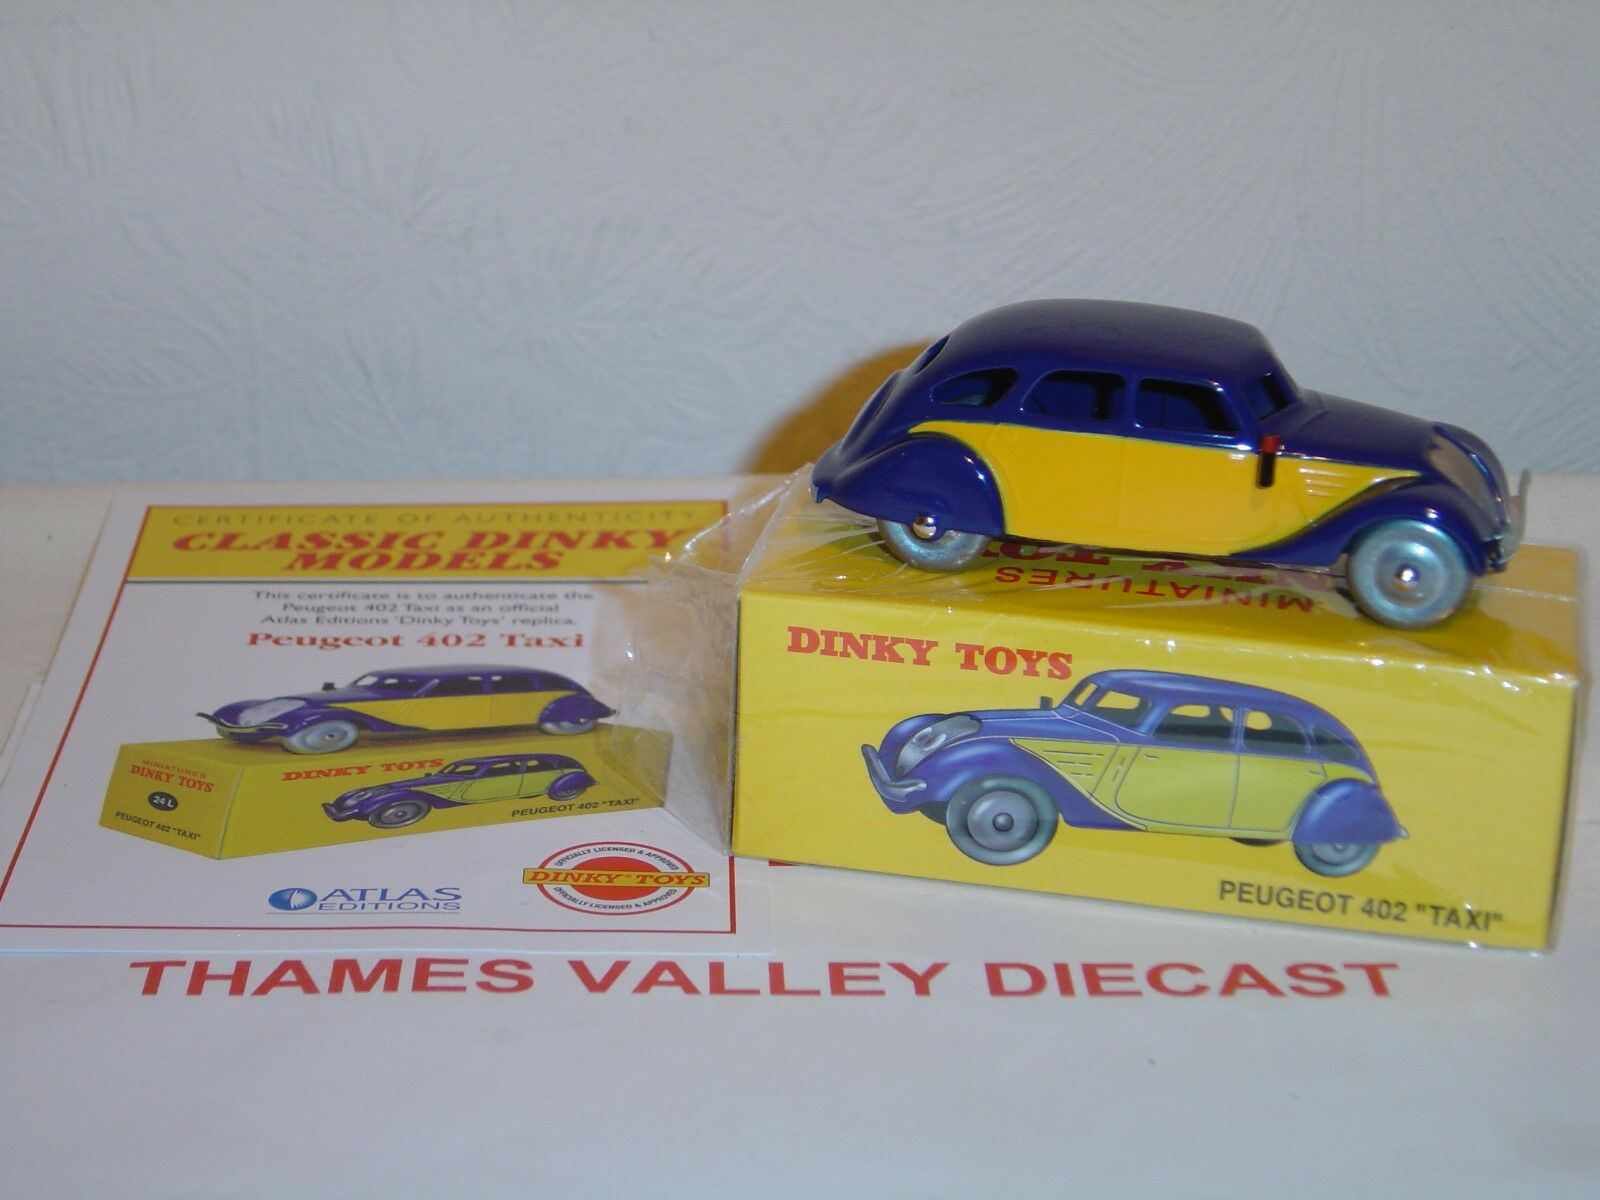 ATLAS EDITIONS DINKY TOYS, 24L, PEUGEOT 402  TAXI  + CERTIFICATE OF AUTHENTICITY